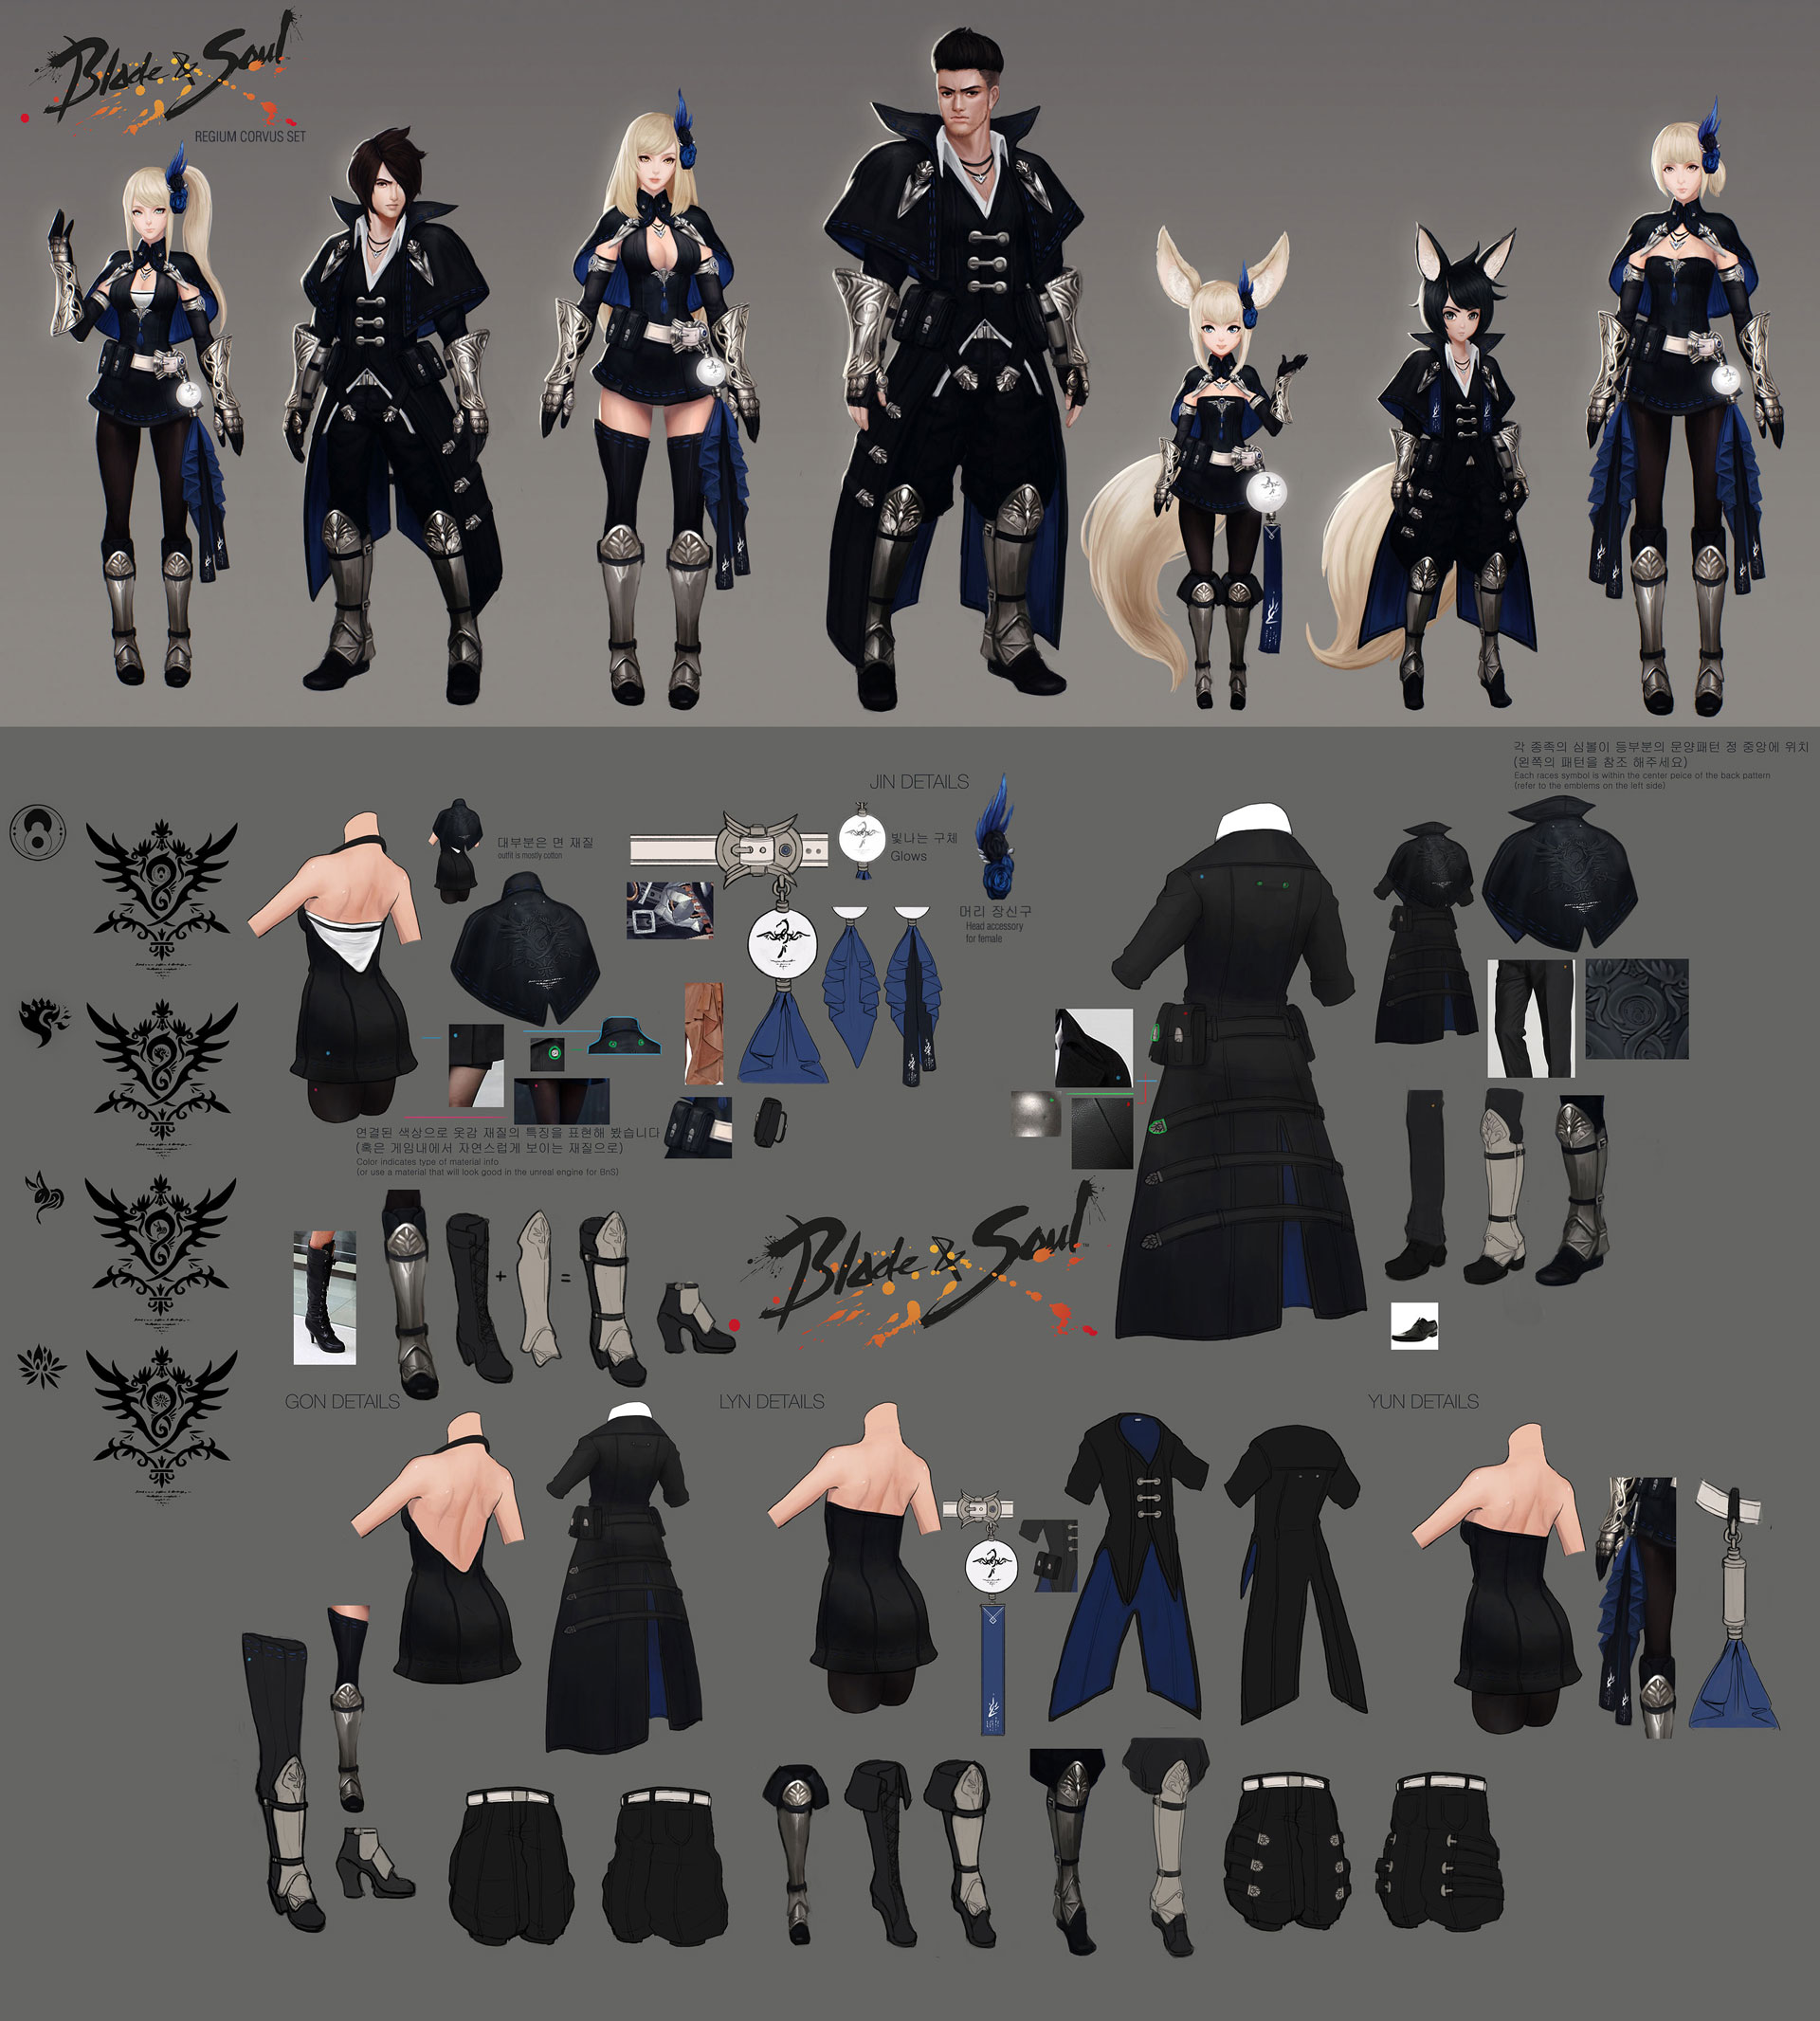 The winners for the Blade & Soul Costume Design contest have been selected!  See the winning designs below.